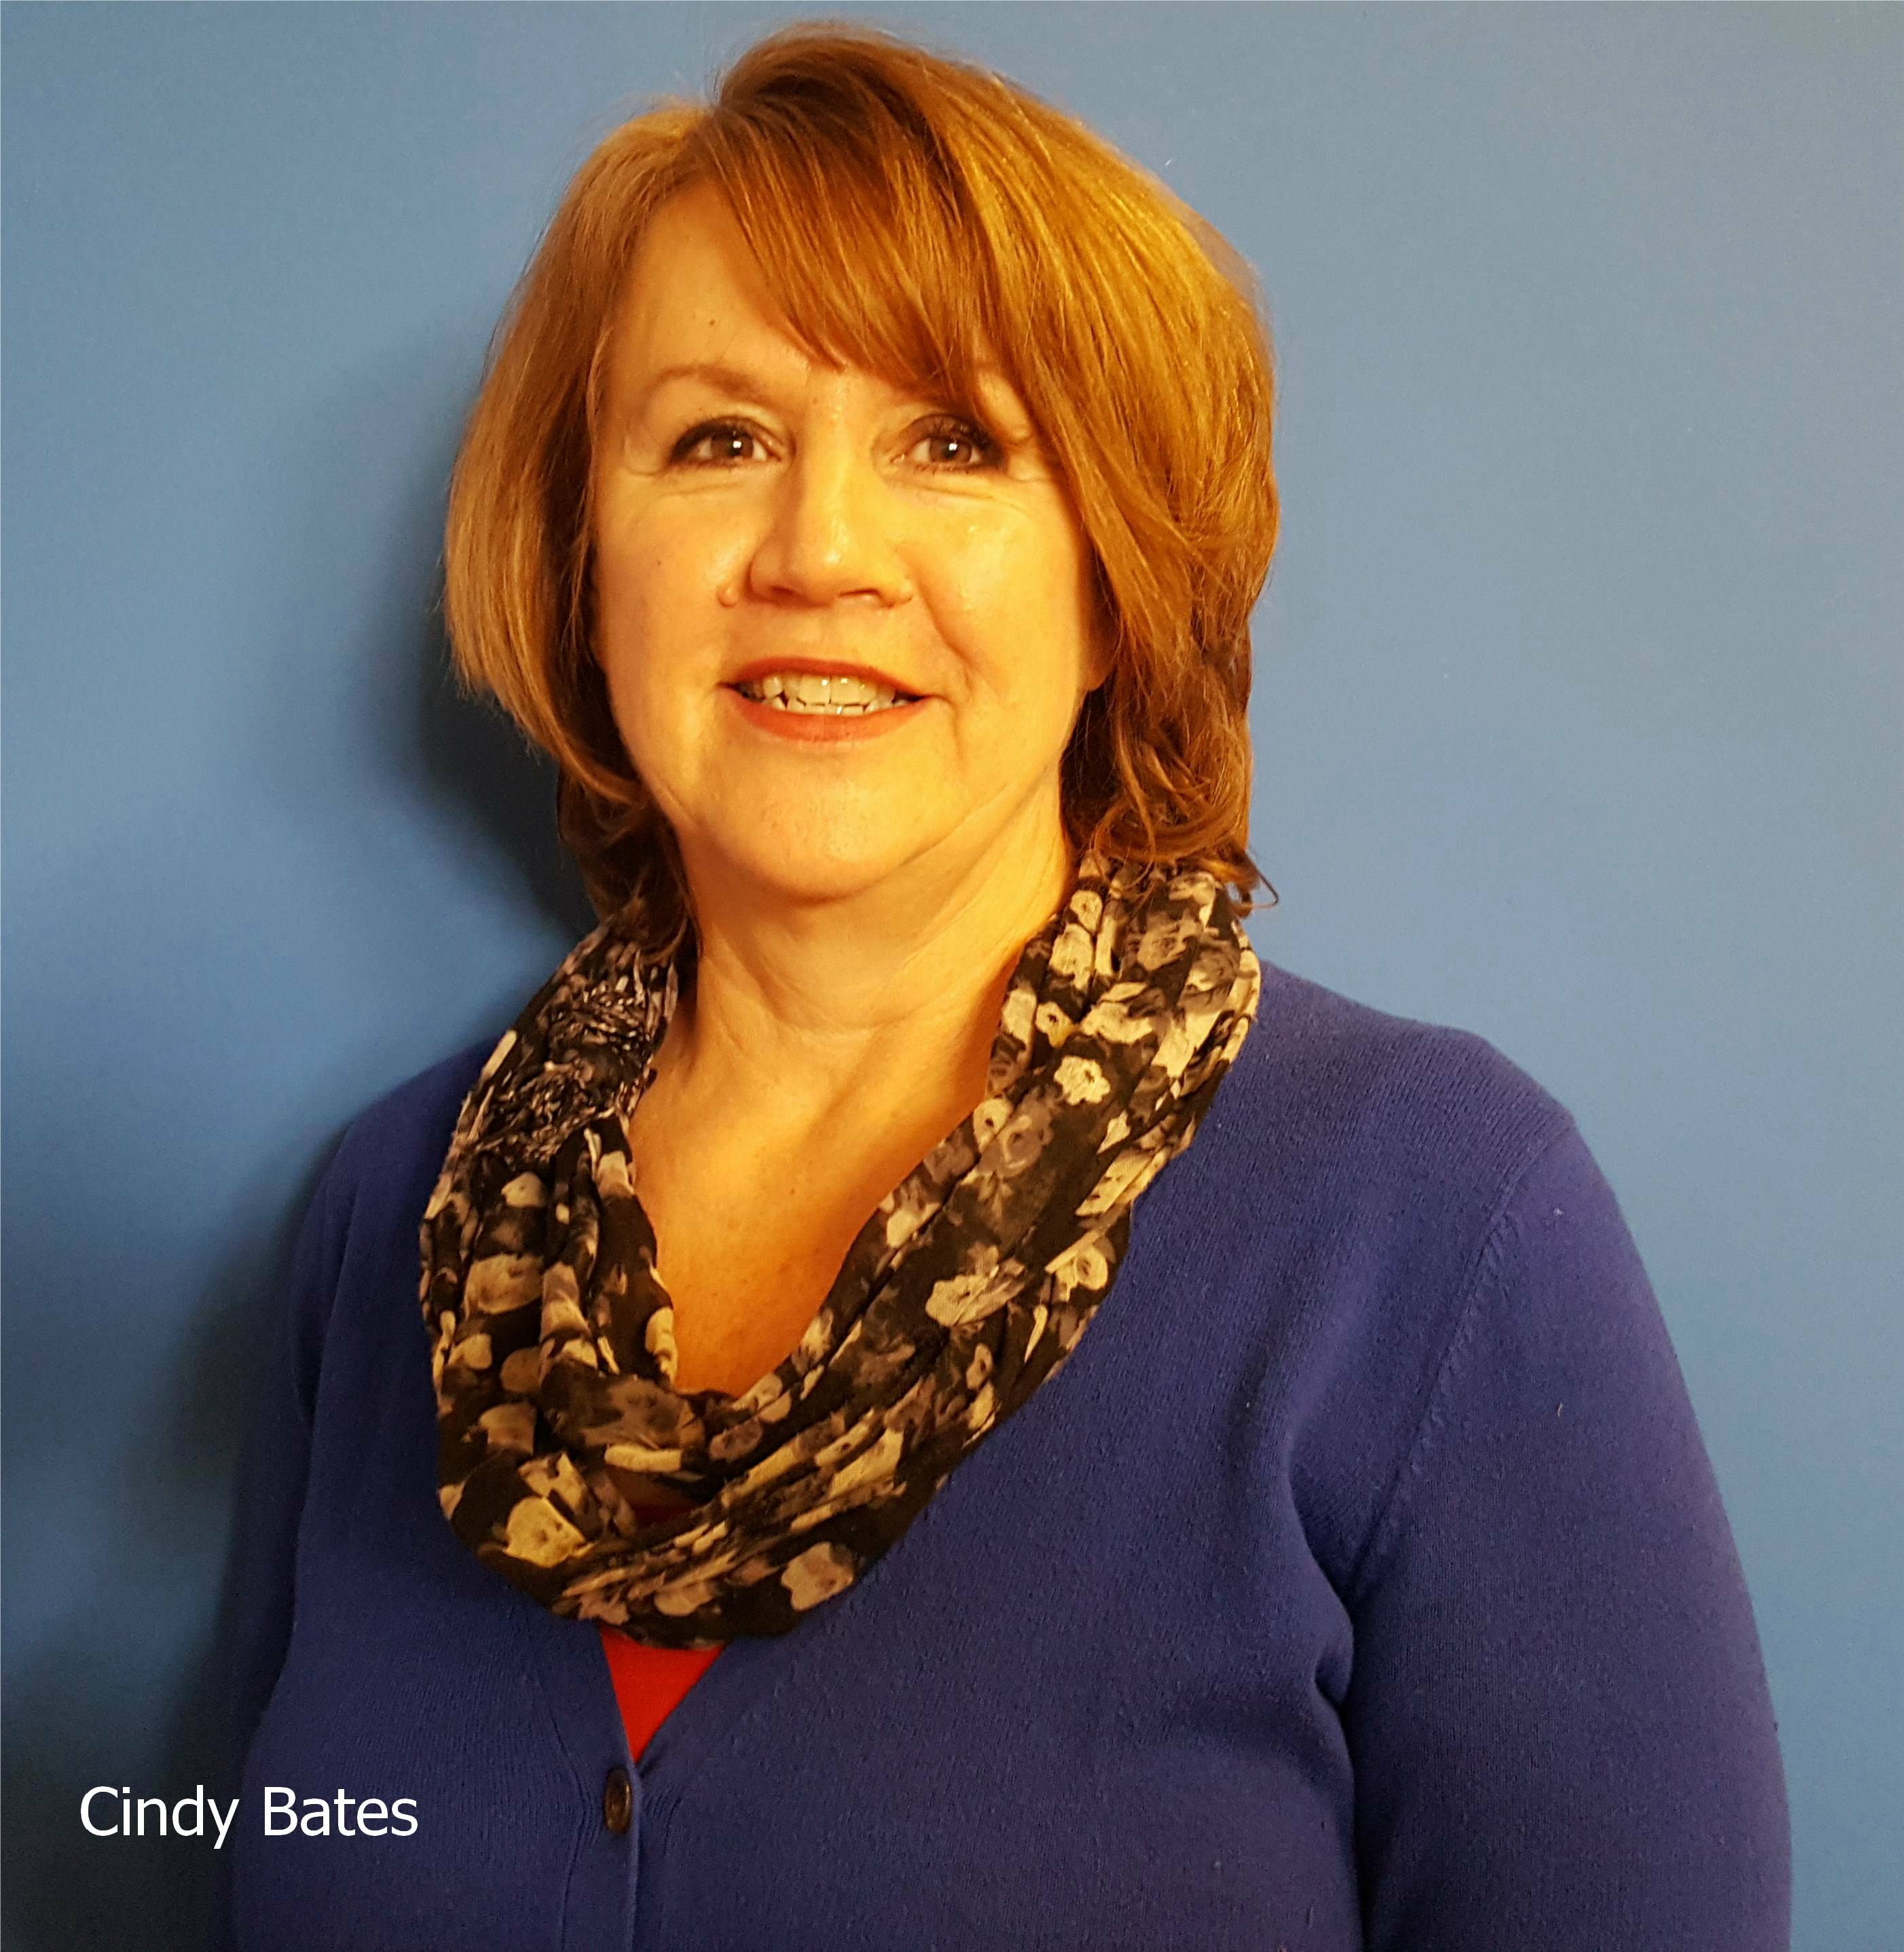 Meet Cindy Bates and pray for us in June 2018